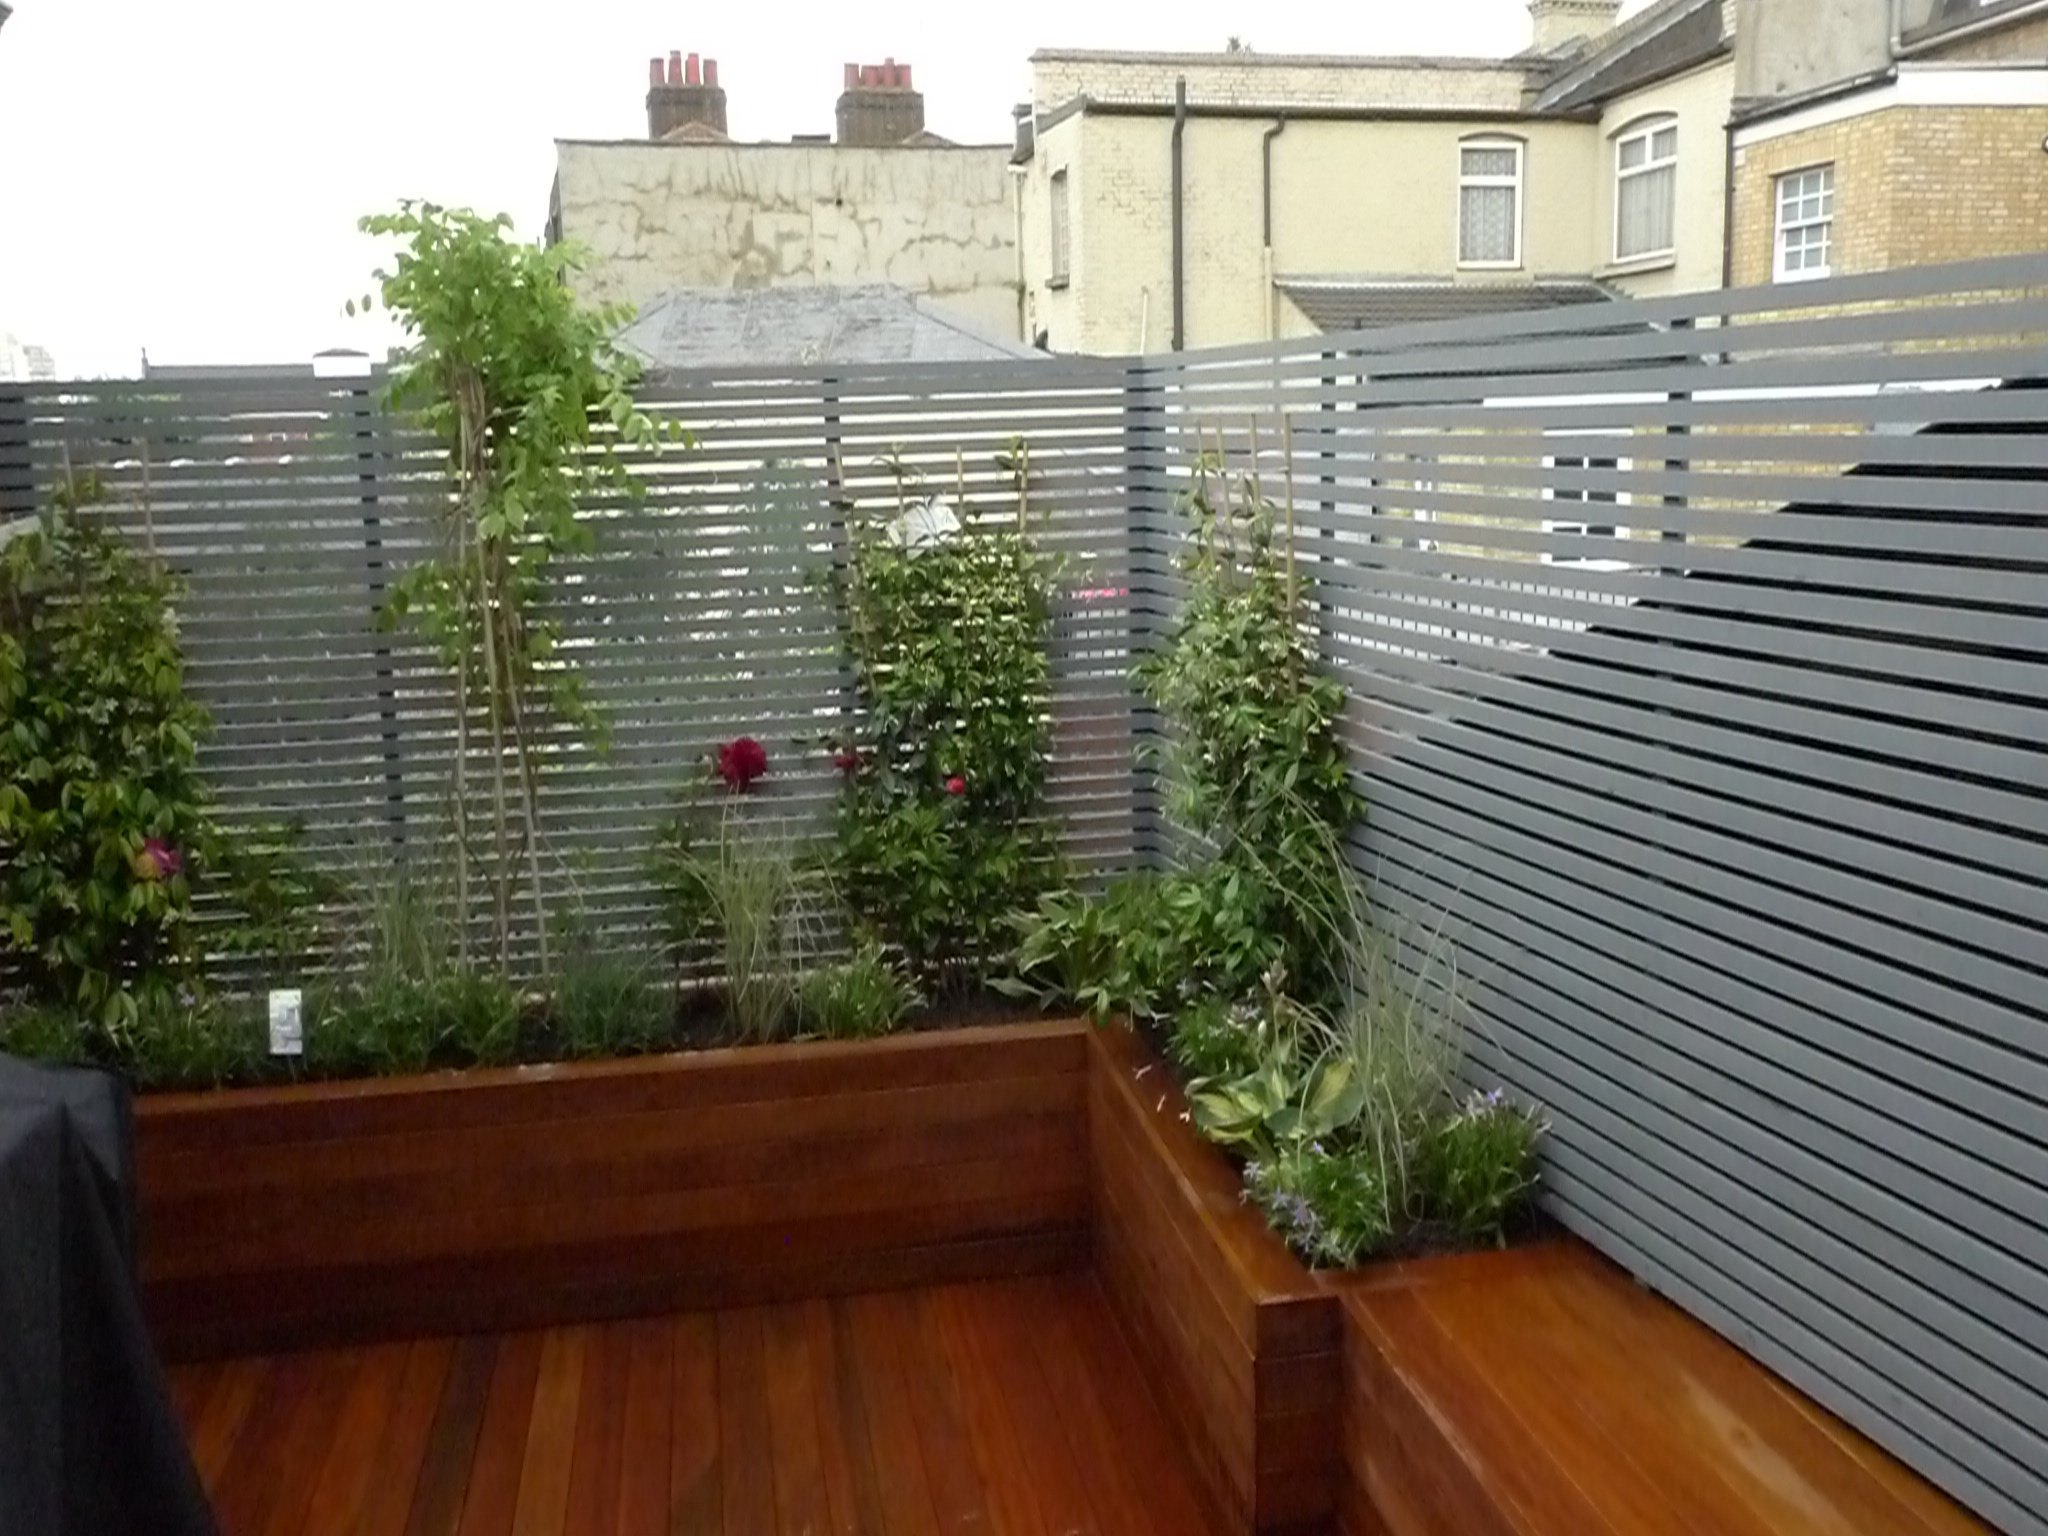 London small roof garden ideas london garden design for Rooftop garden designs